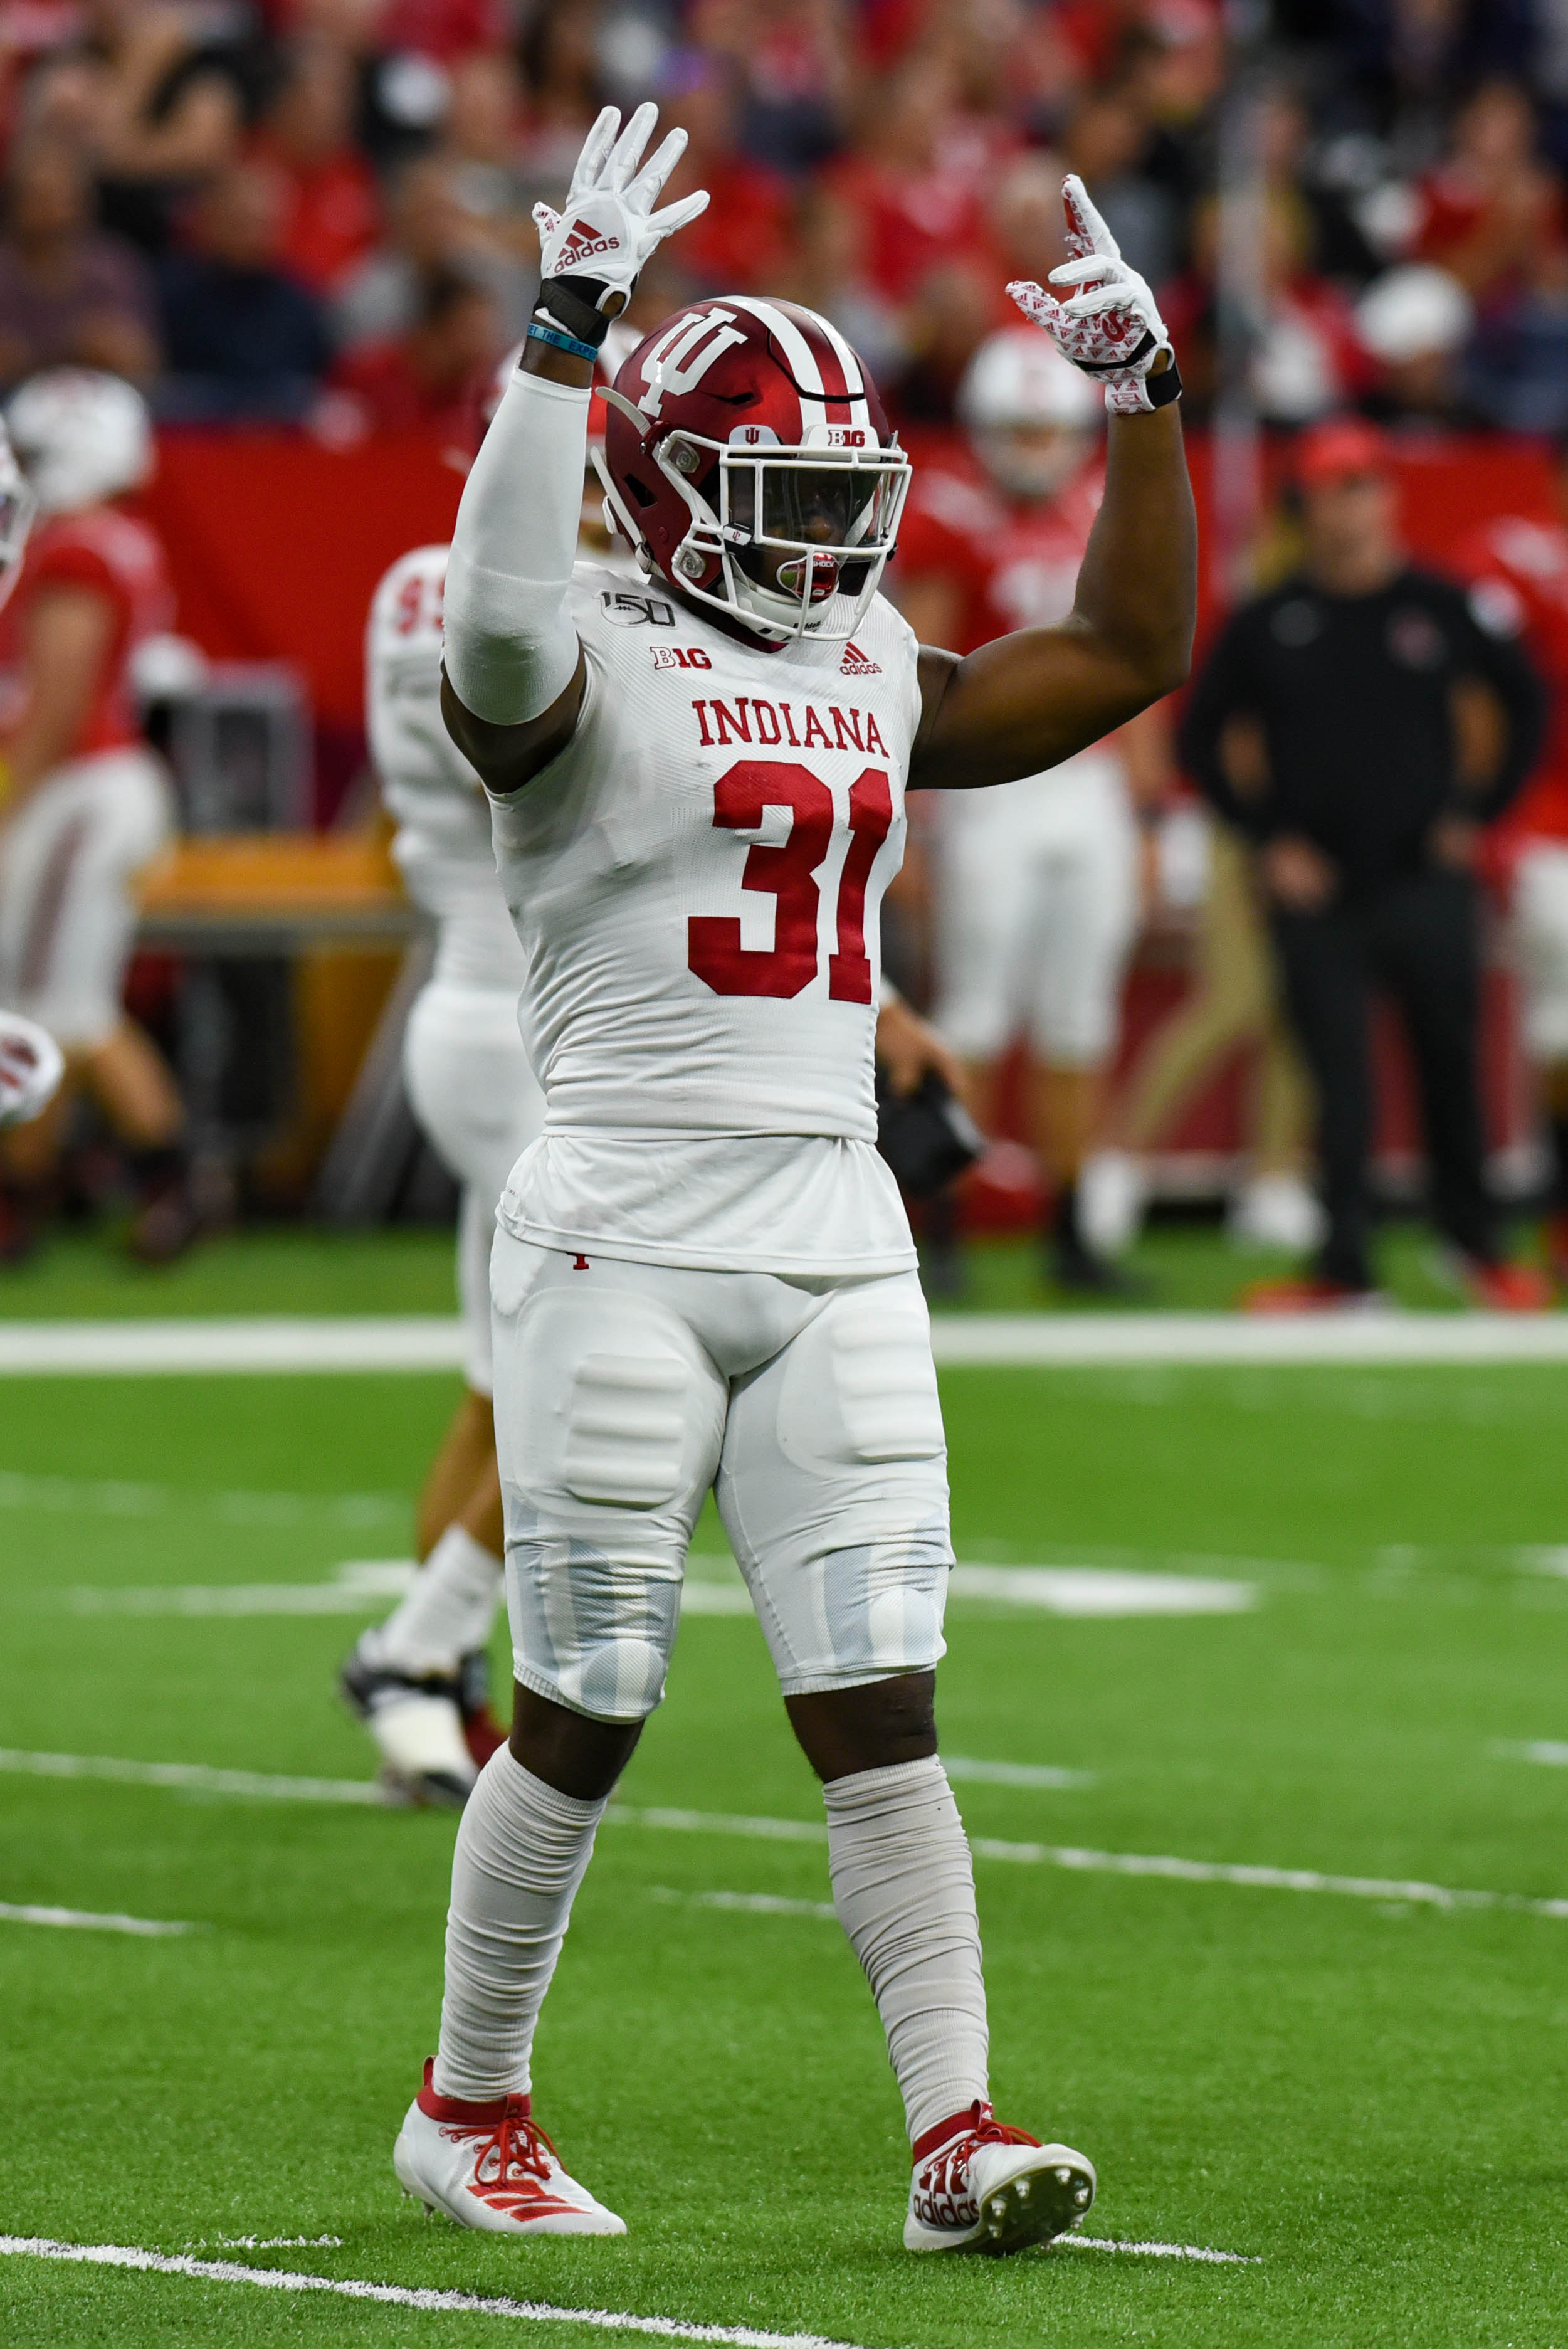 COLLEGE FOOTBALL: AUG 31 Indiana v Ball State